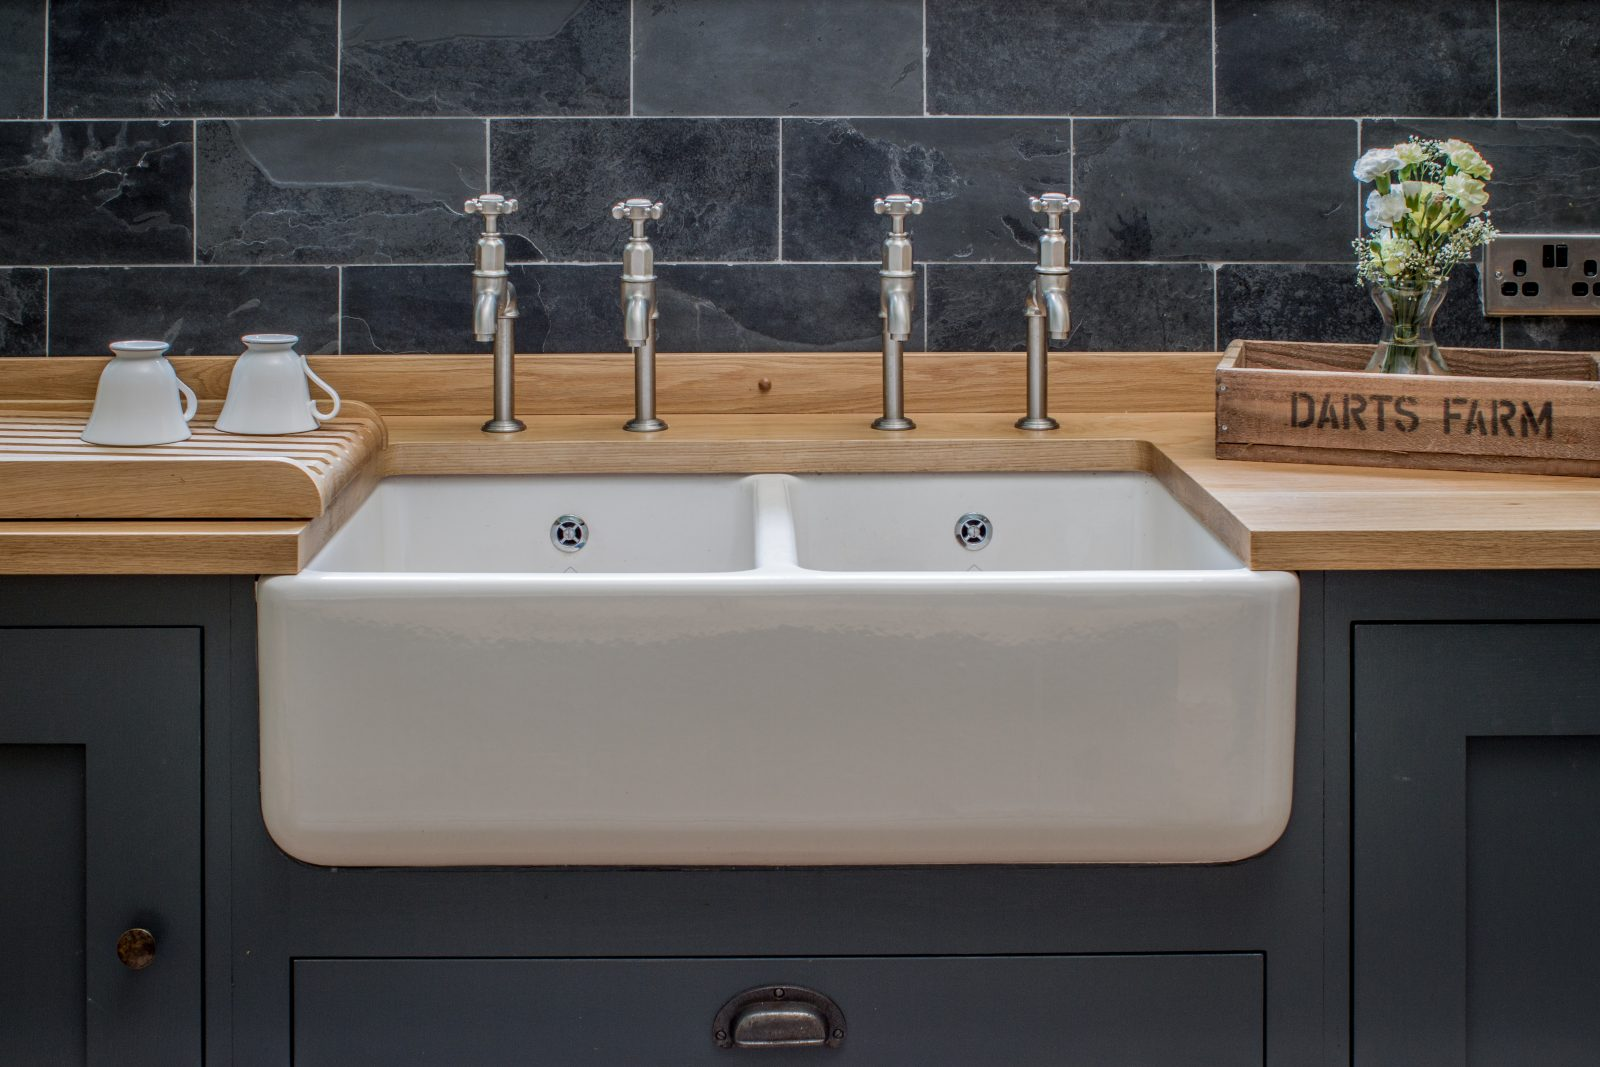 Belfast farmhouse sink with double bibcock taps and slate wall tiles